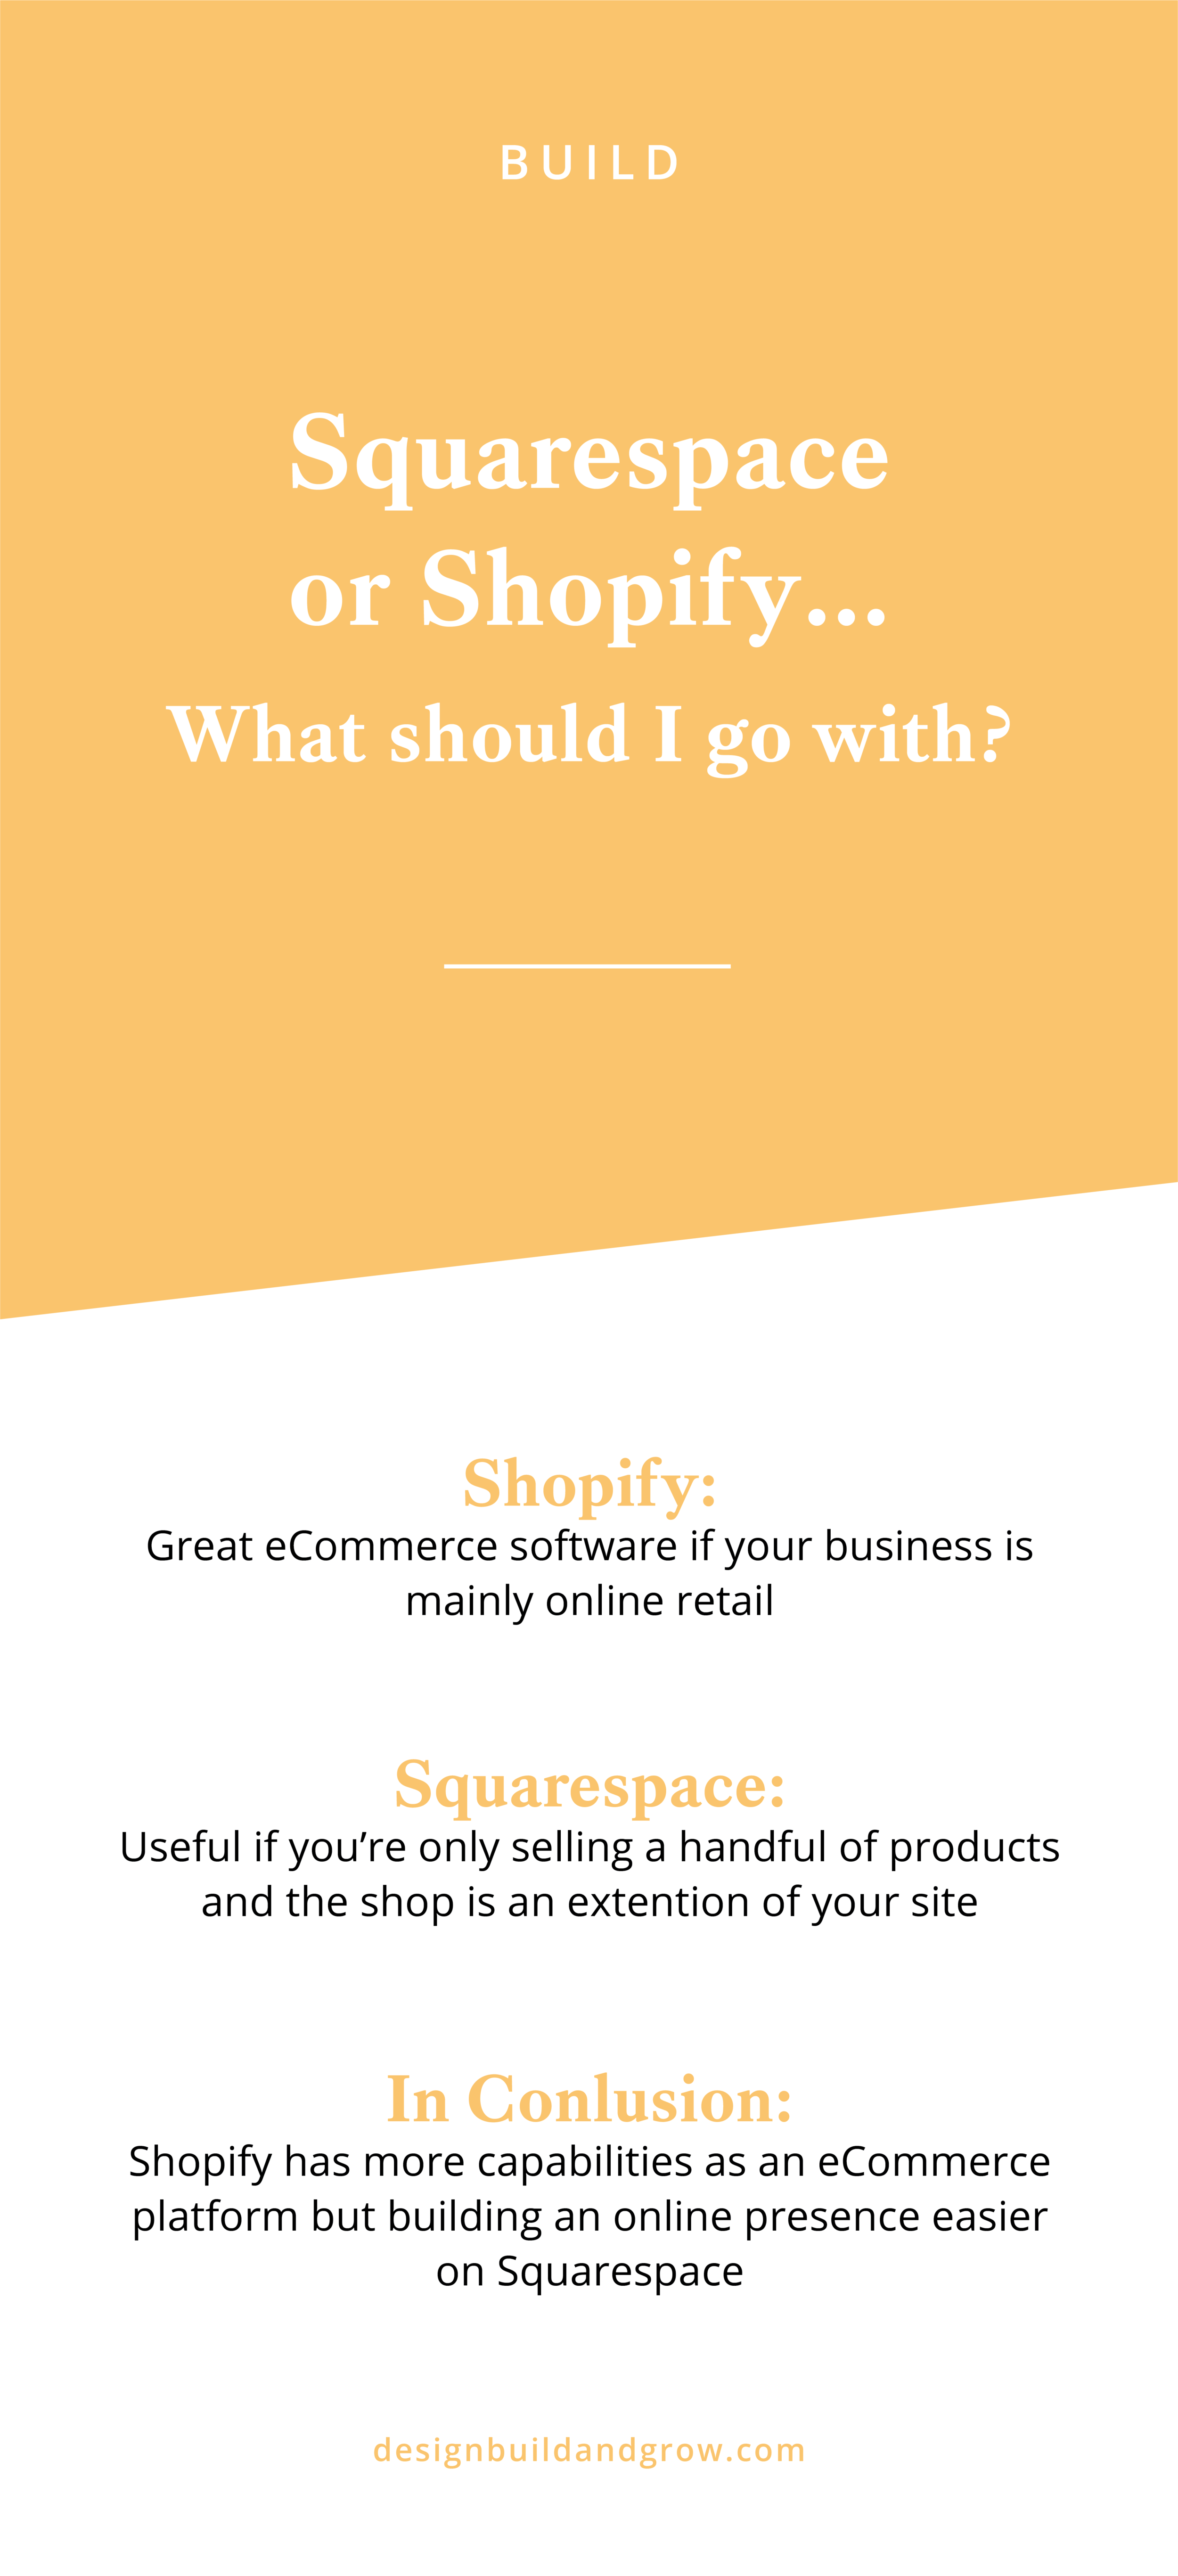 Squarespace or Shopify... What should I go with?